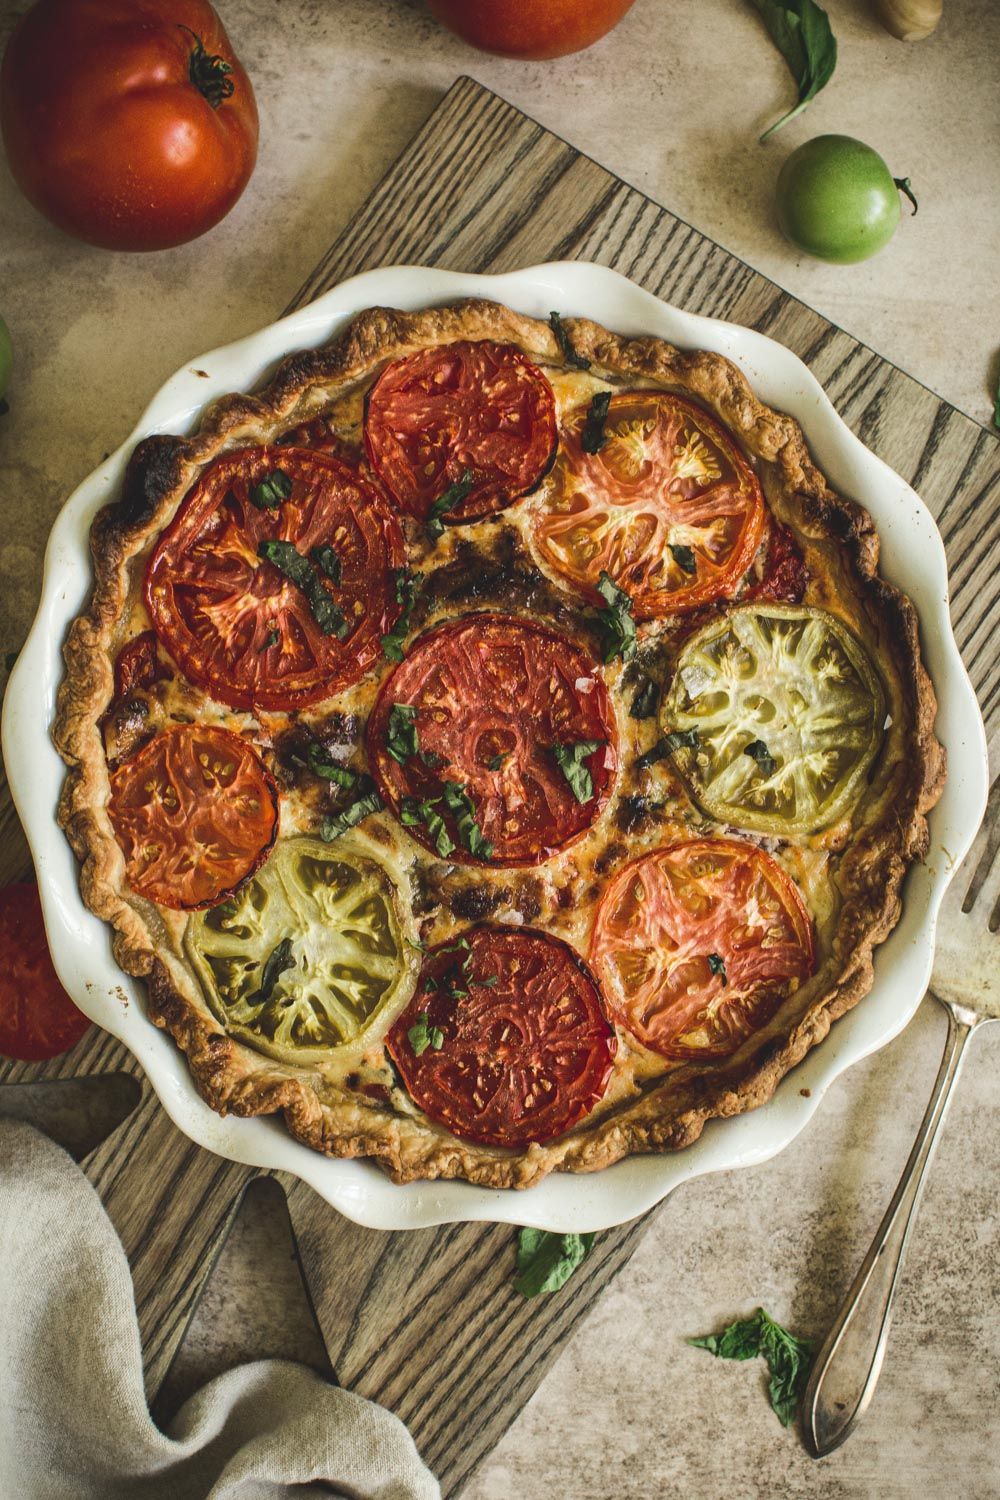 tomato pie in a white pie dish on top of a wooden cutting board